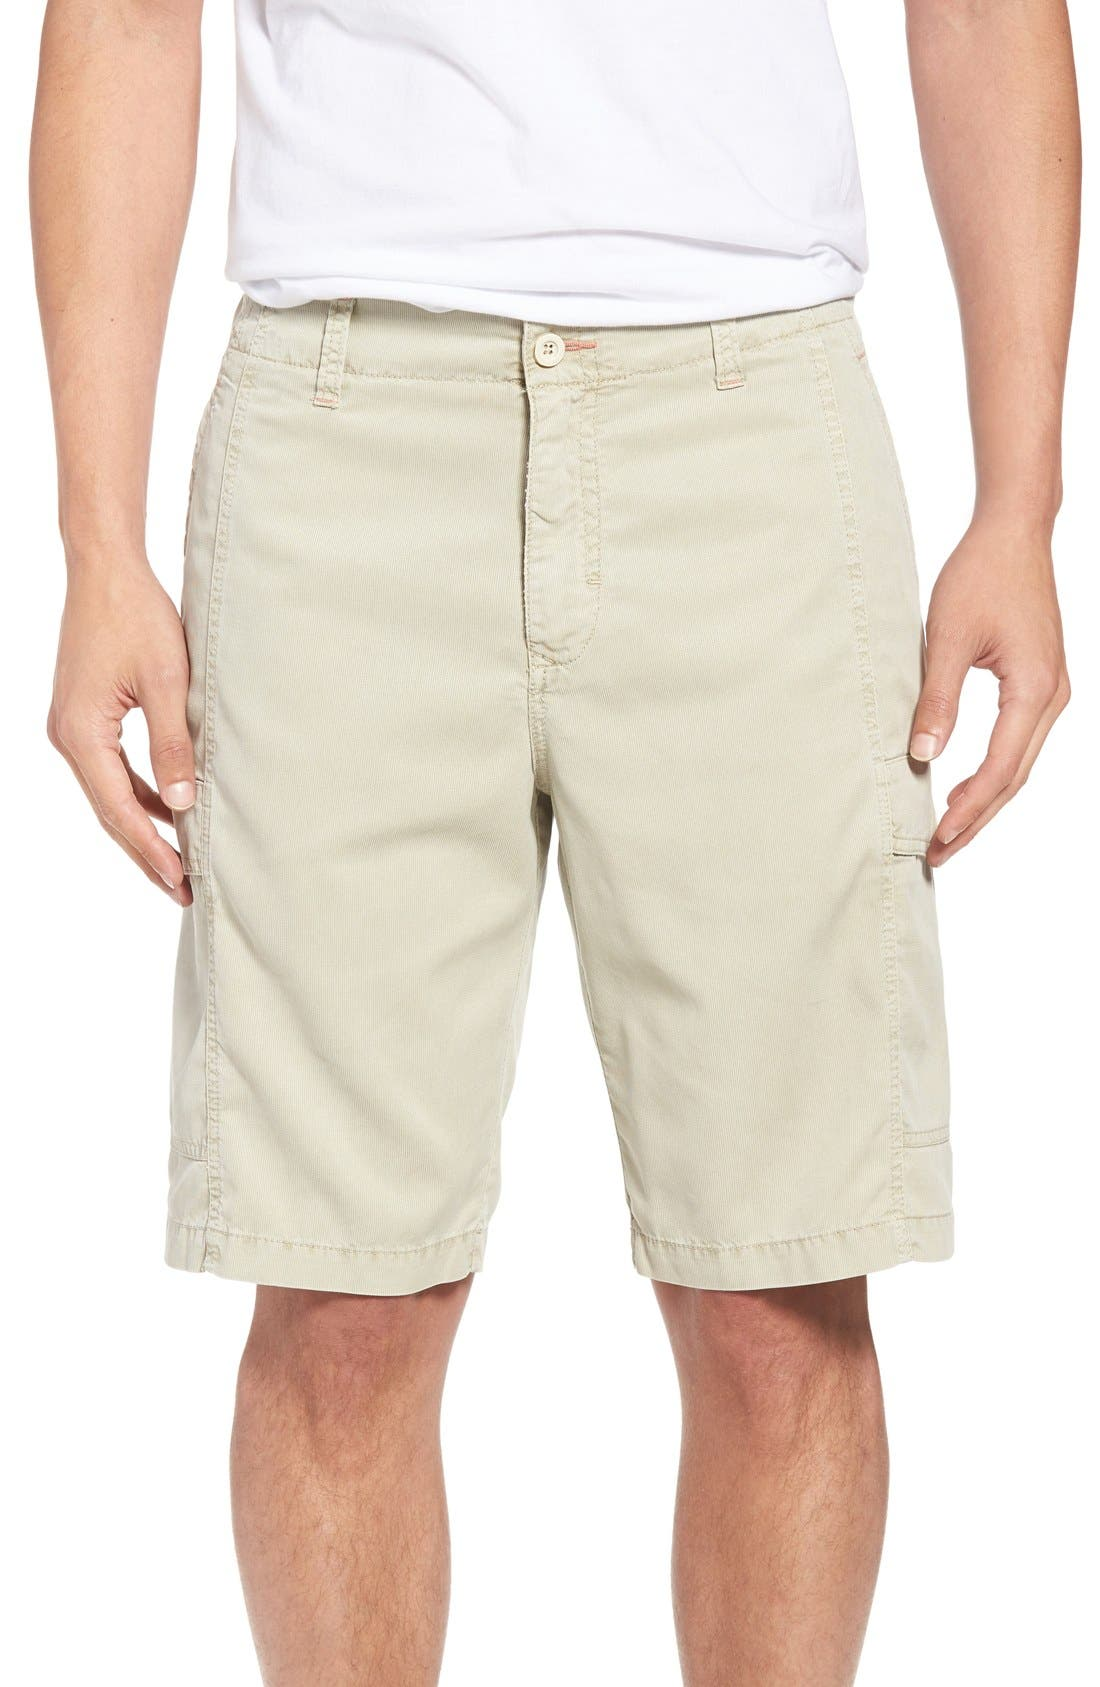 Alternate Image 1 Selected - Tommy Bahama 'Beachfront Kihei' Cargo Shorts